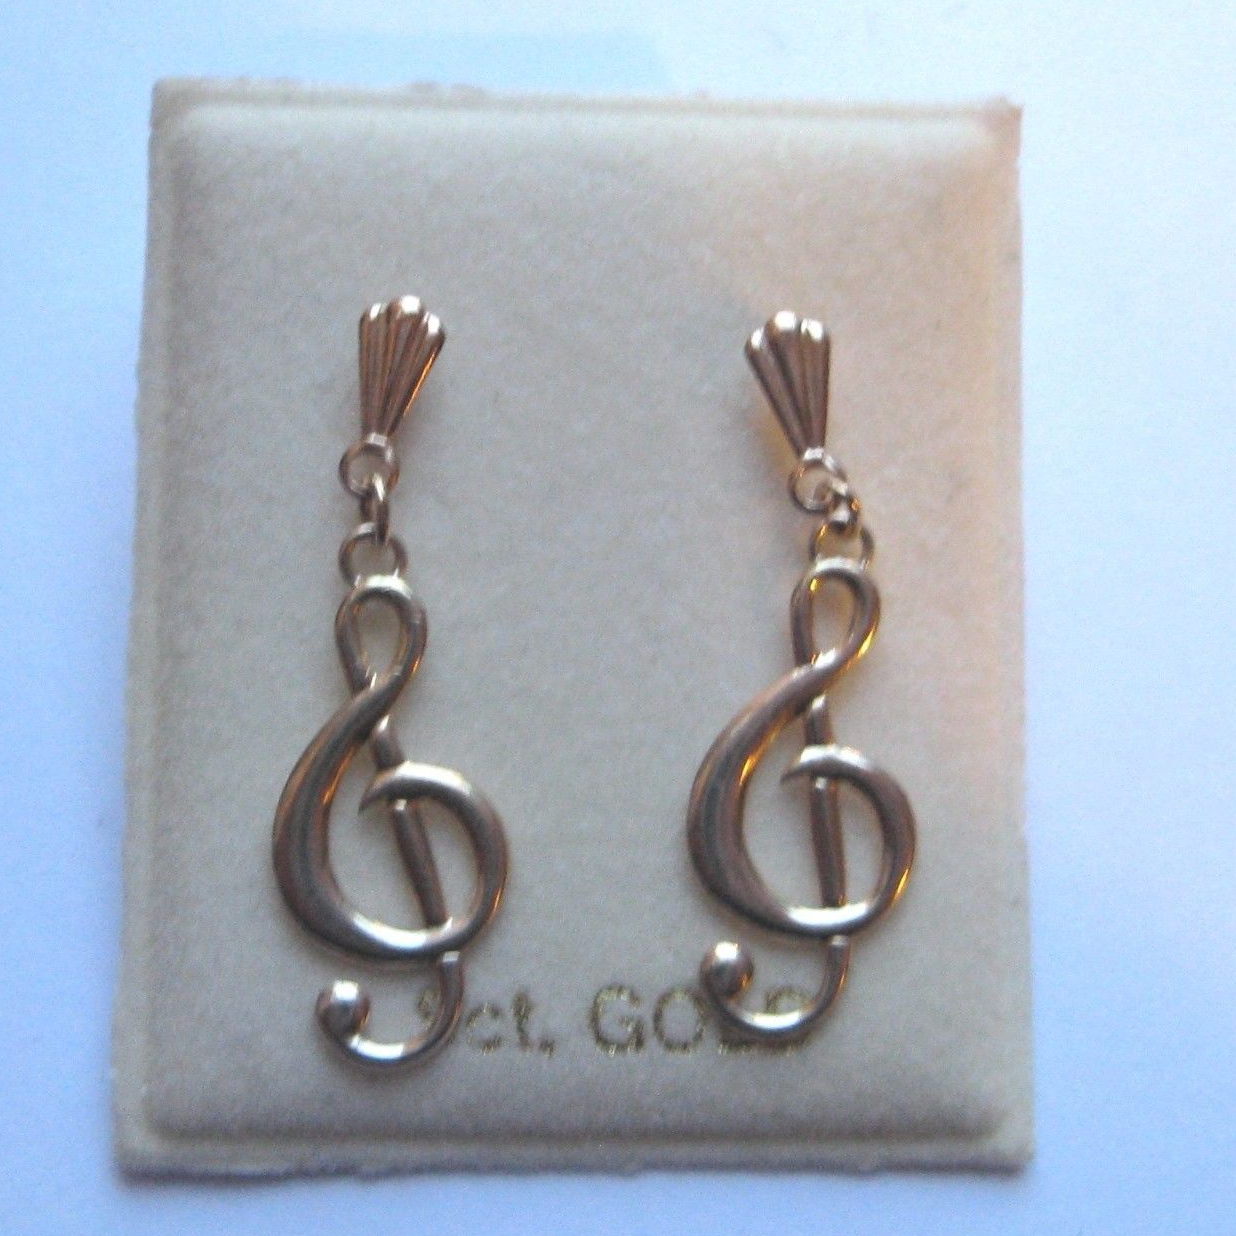 9ct Gold Treble Clef Stud Earrings wT3prnh